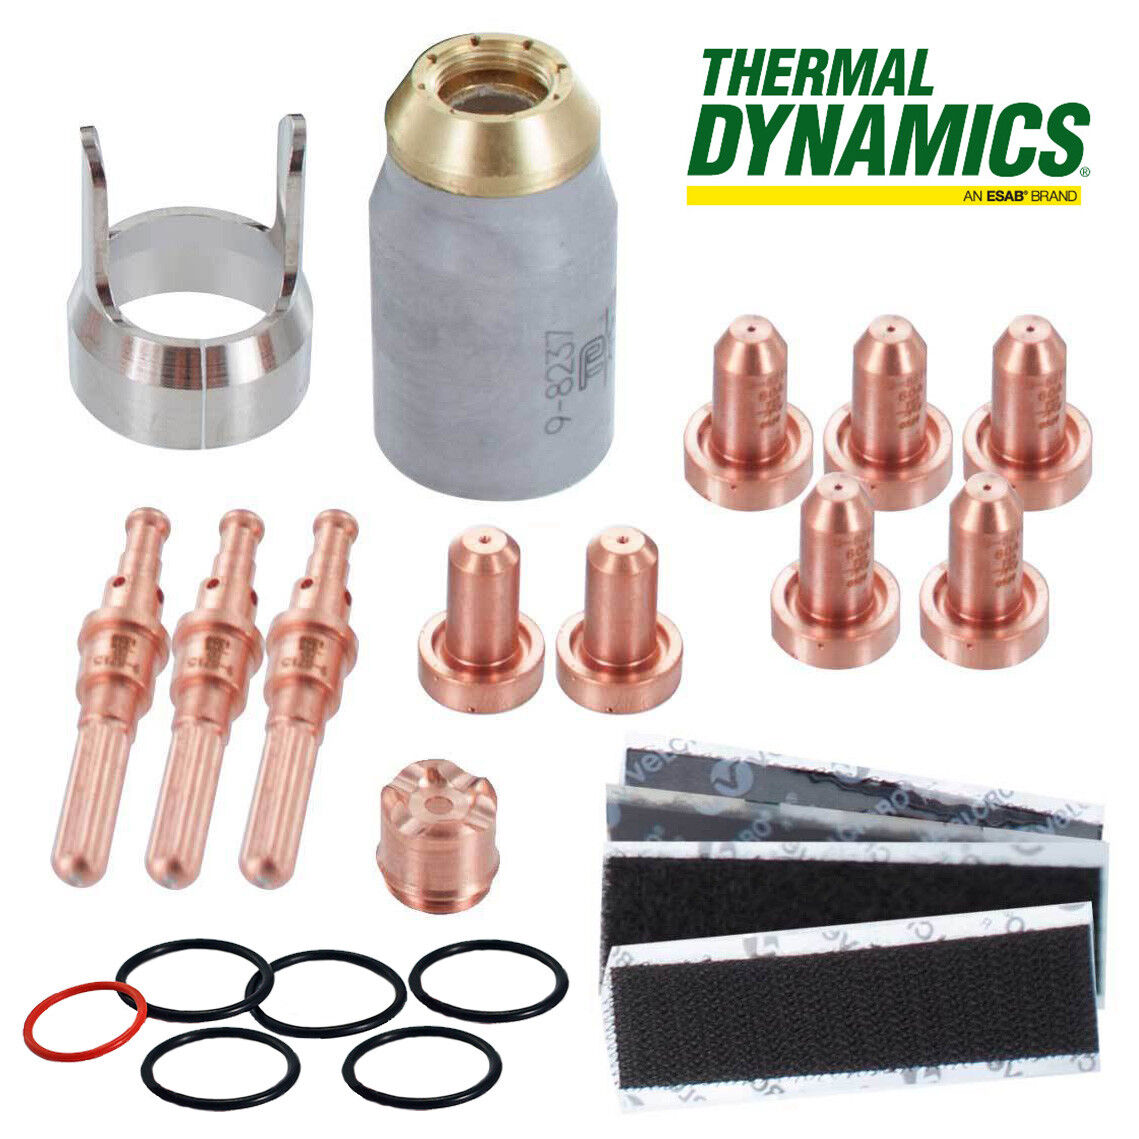 5-0075 Genuine Thermal Dynamics SL60 Torch 60 Amp Consumables Parts Kit